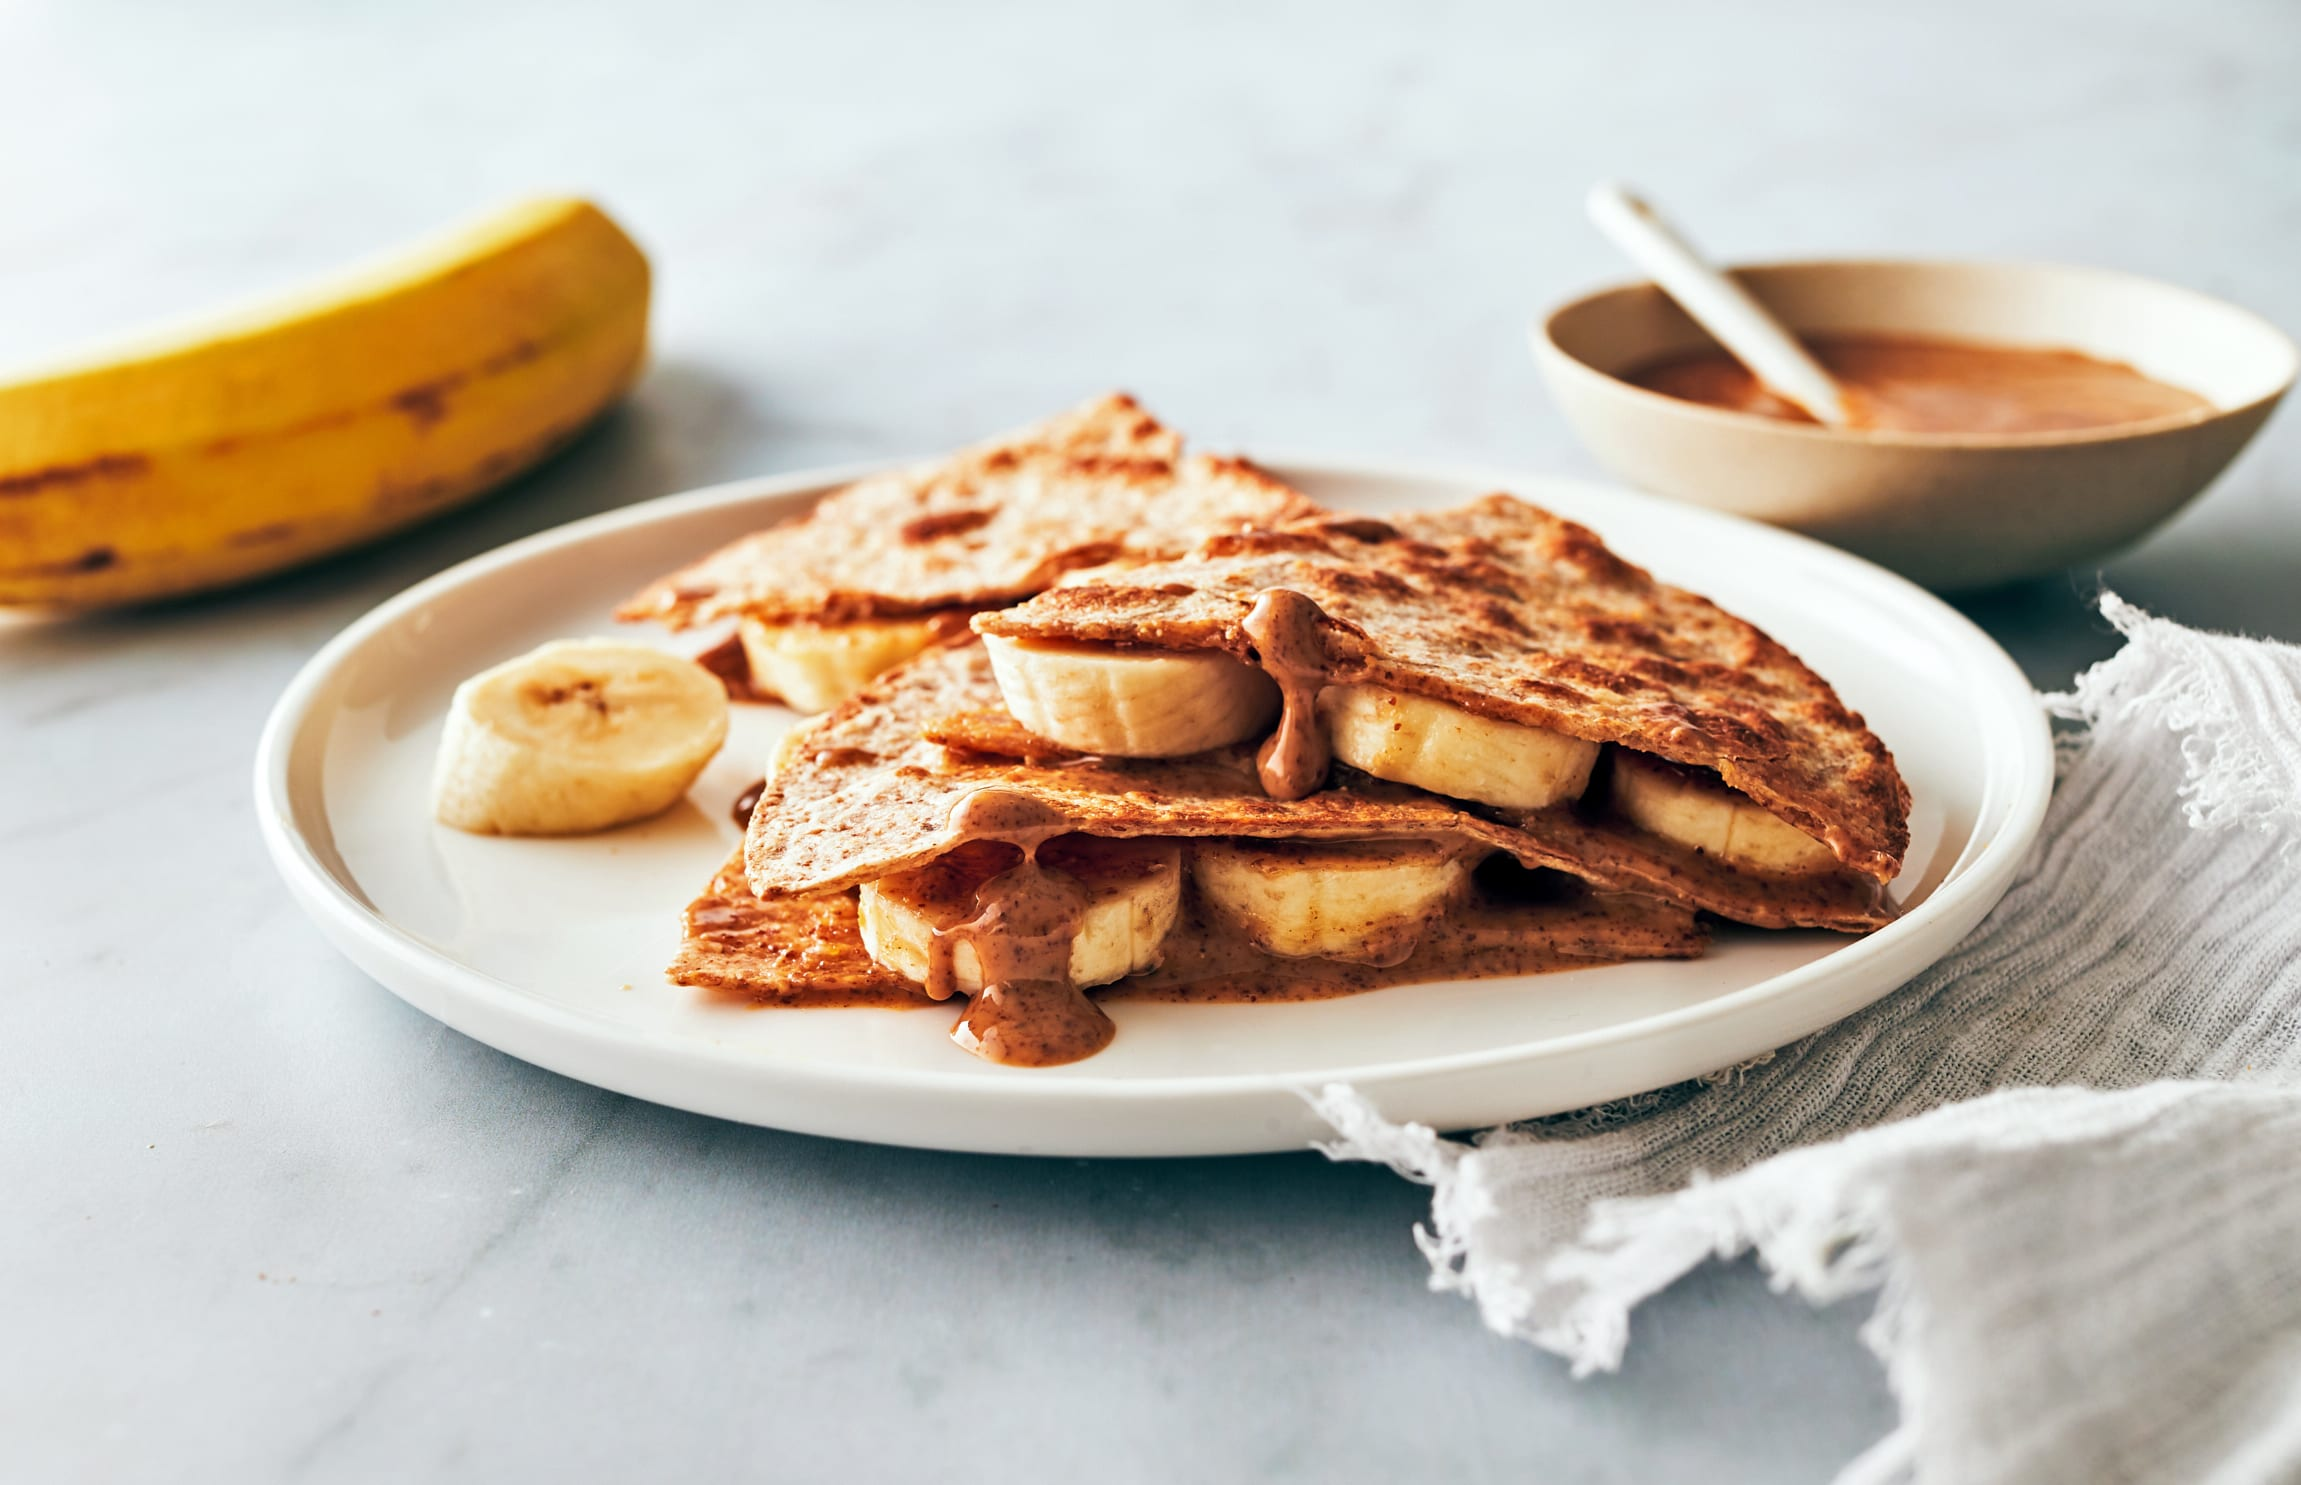 sugar free 3 recipes- Banana and Almond Butter Quesadilla  - Banana and Almond Butter Quesadilla